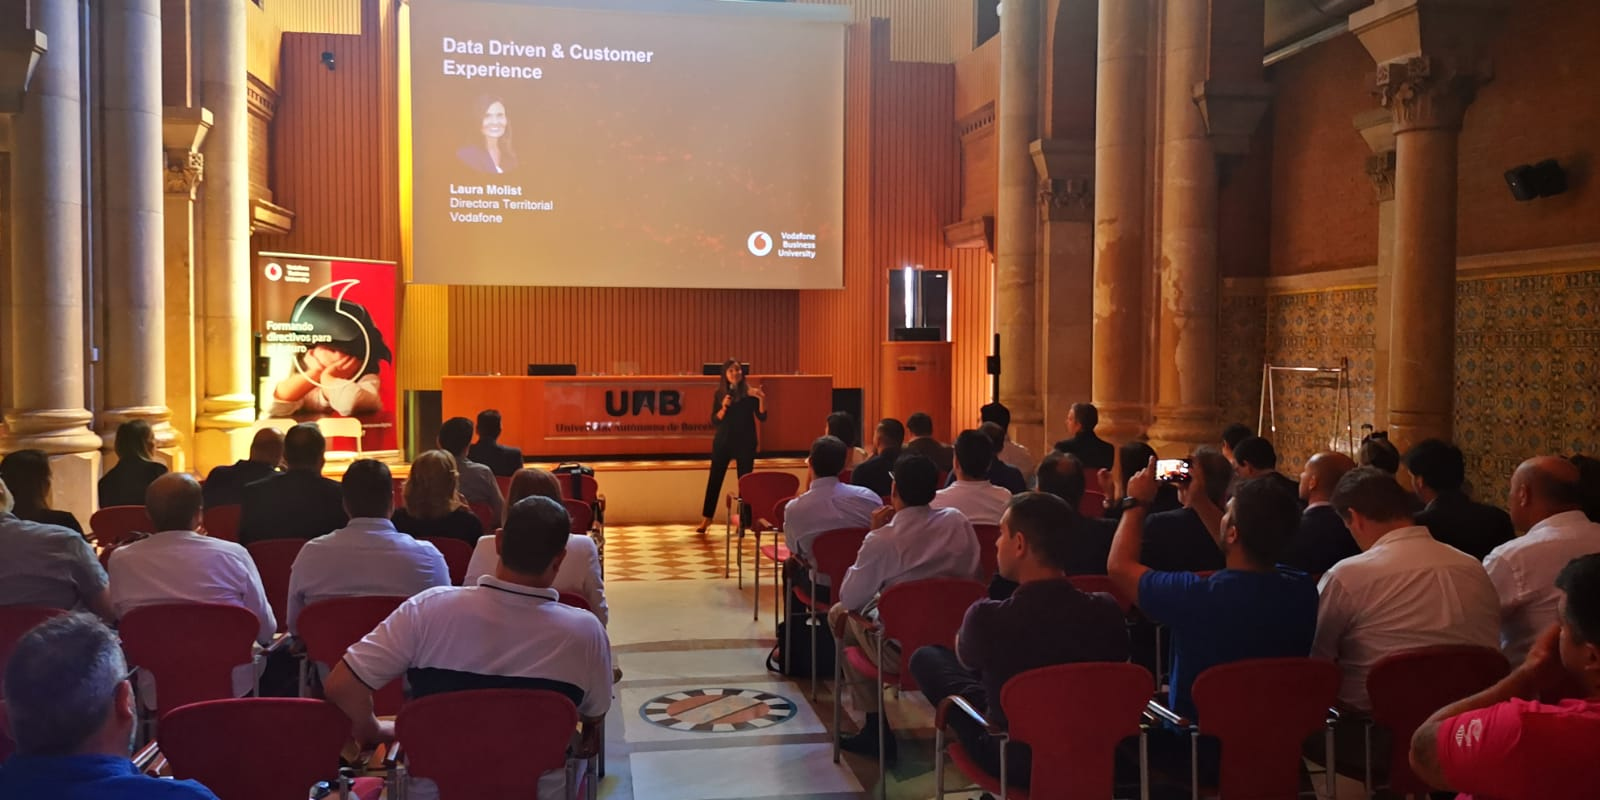 Sesión Vodafone Business University en Barcelona sobre Data Driven & Customer Experience